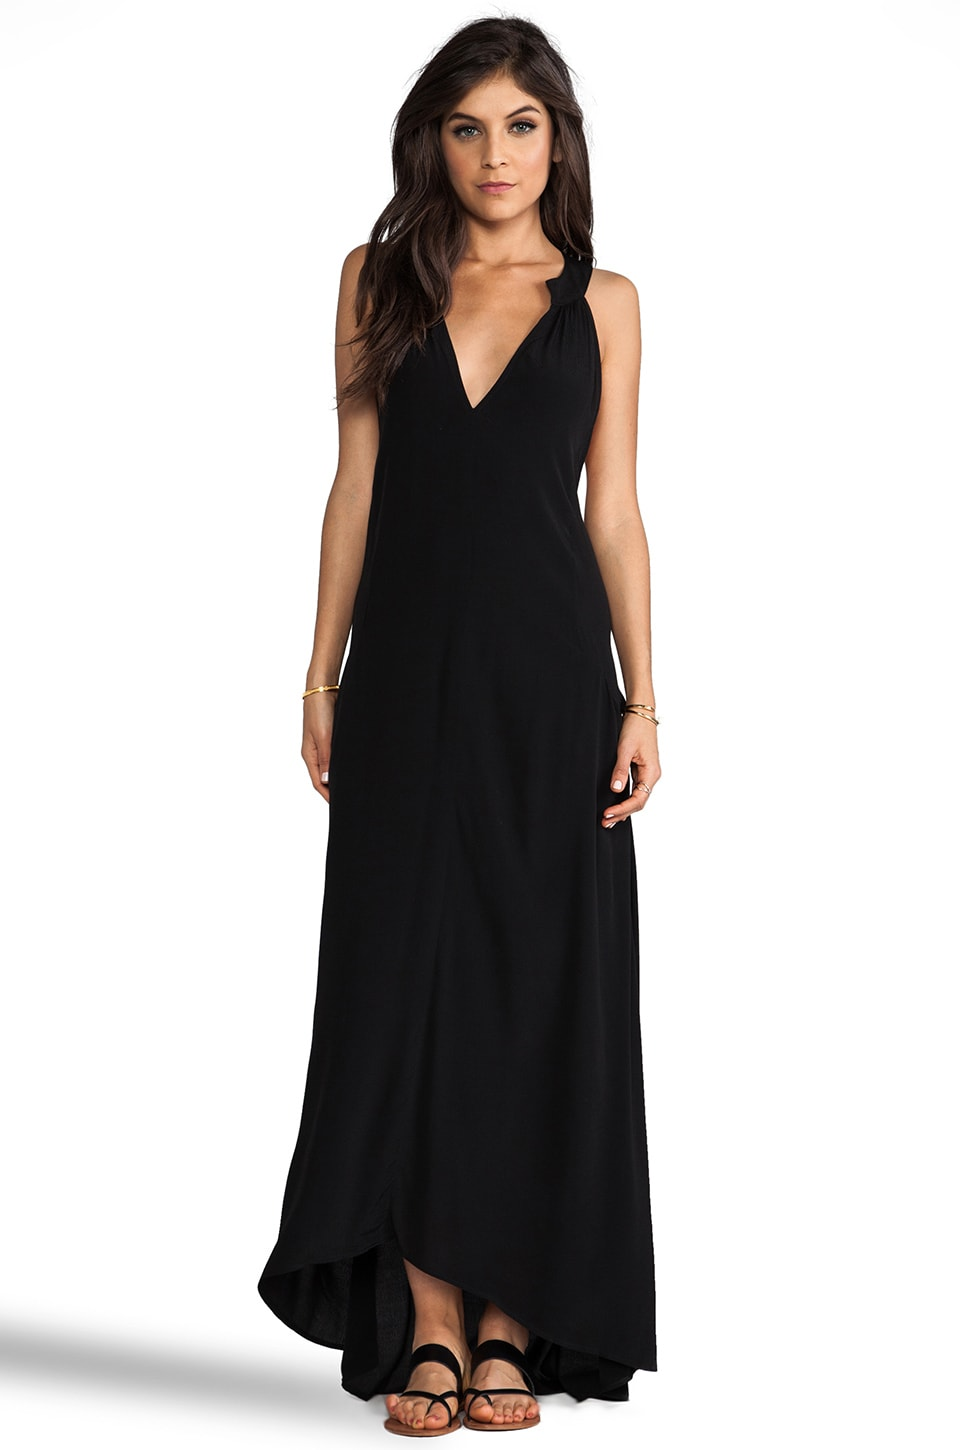 FLYNN SKYE Amber Maxi Dress in Black Noir